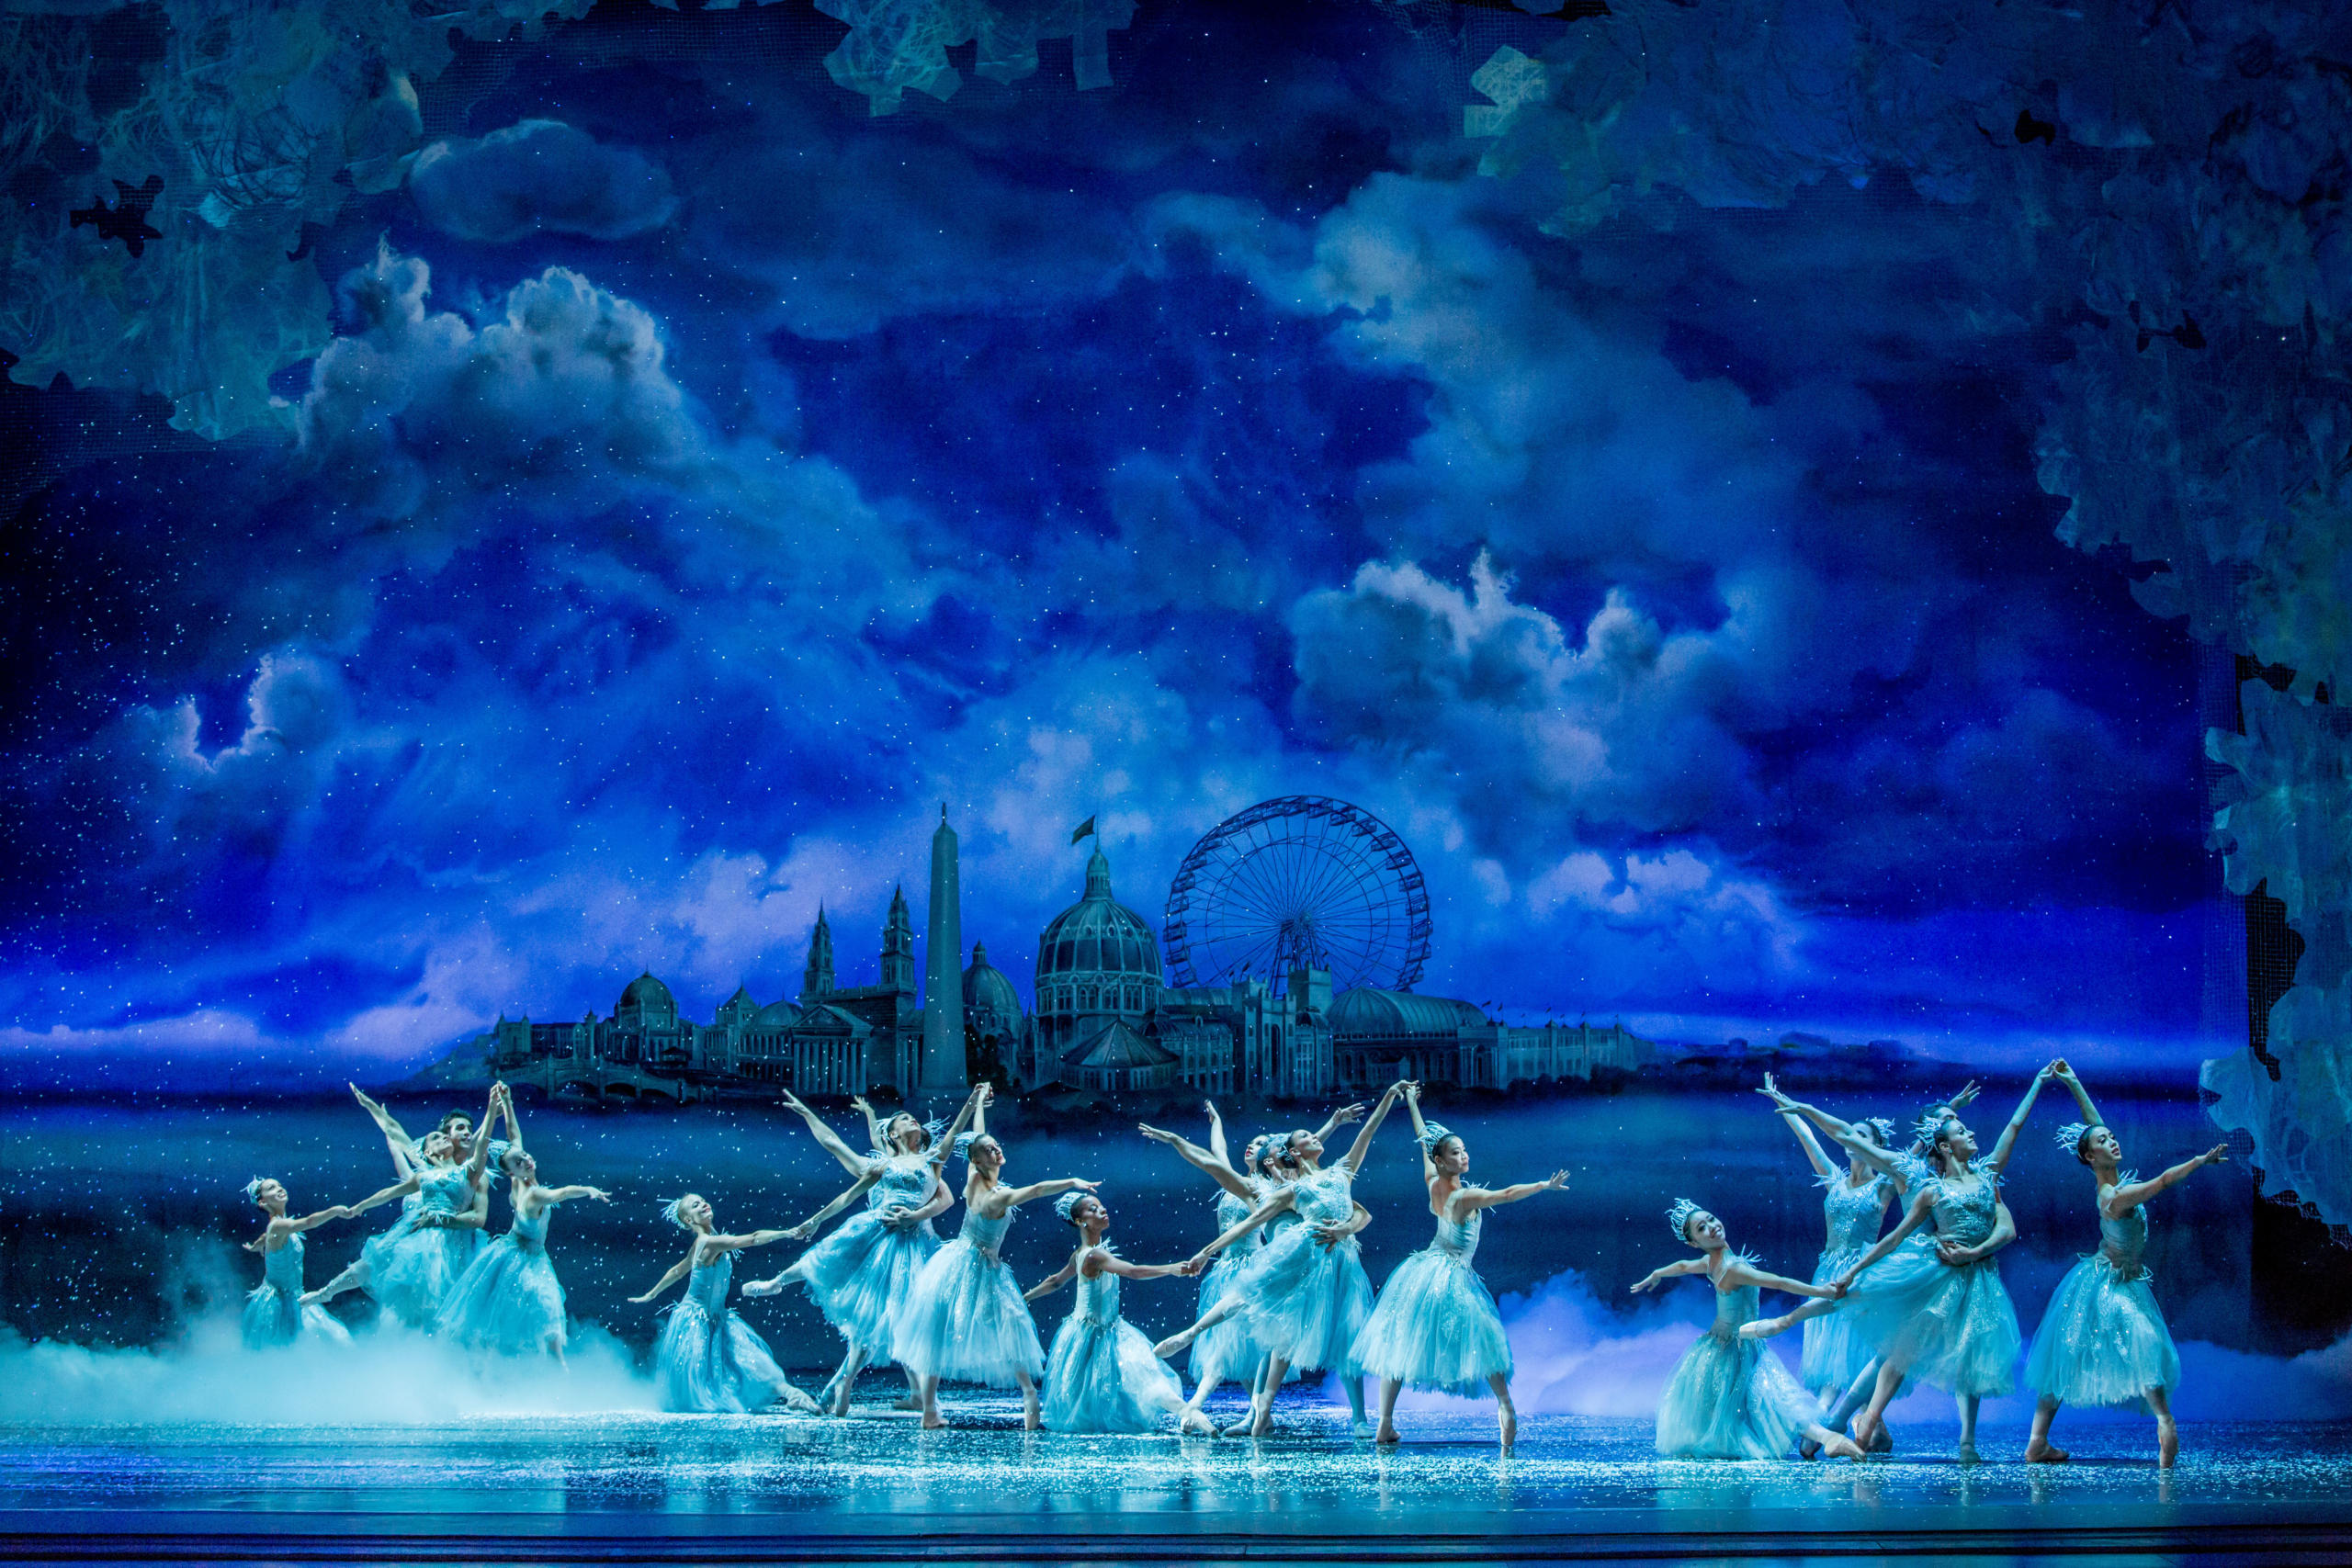 Pulling Back the Curtain: The Nutcracker